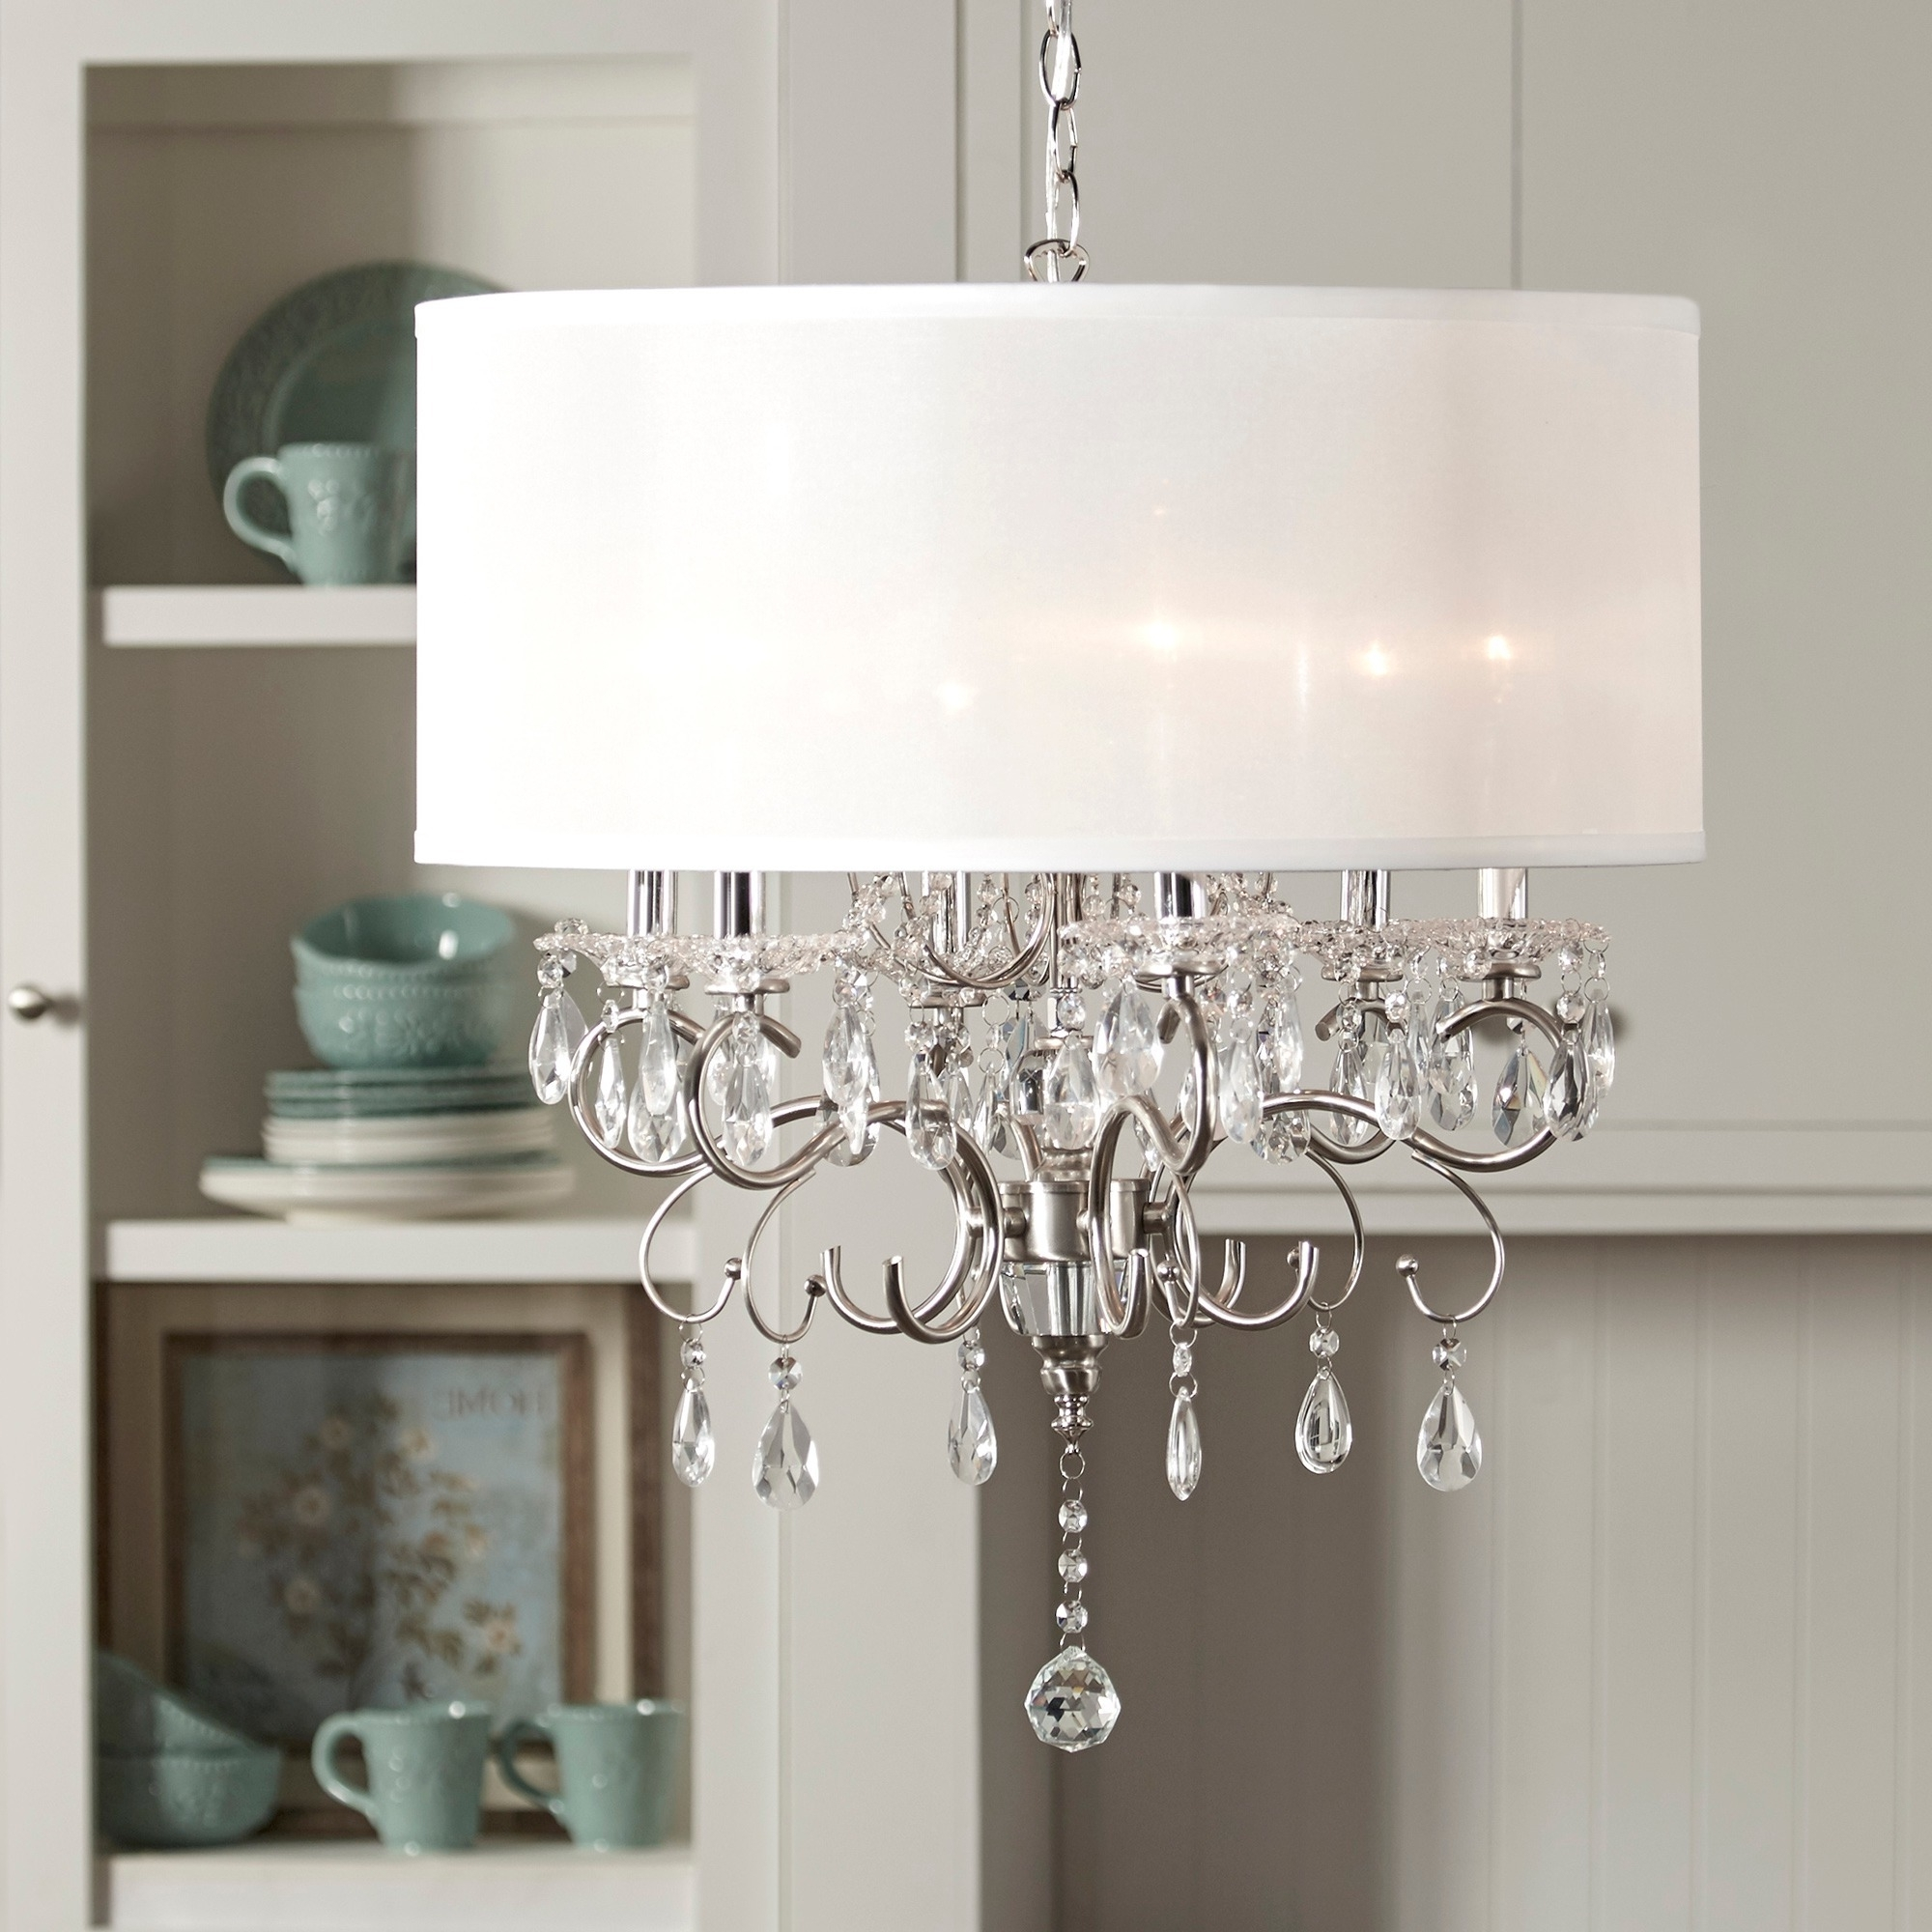 Chandelier Light Shades With Well Known Excellent Light Shades Of Grey Html Purple Names Shade Blue (View 6 of 15)